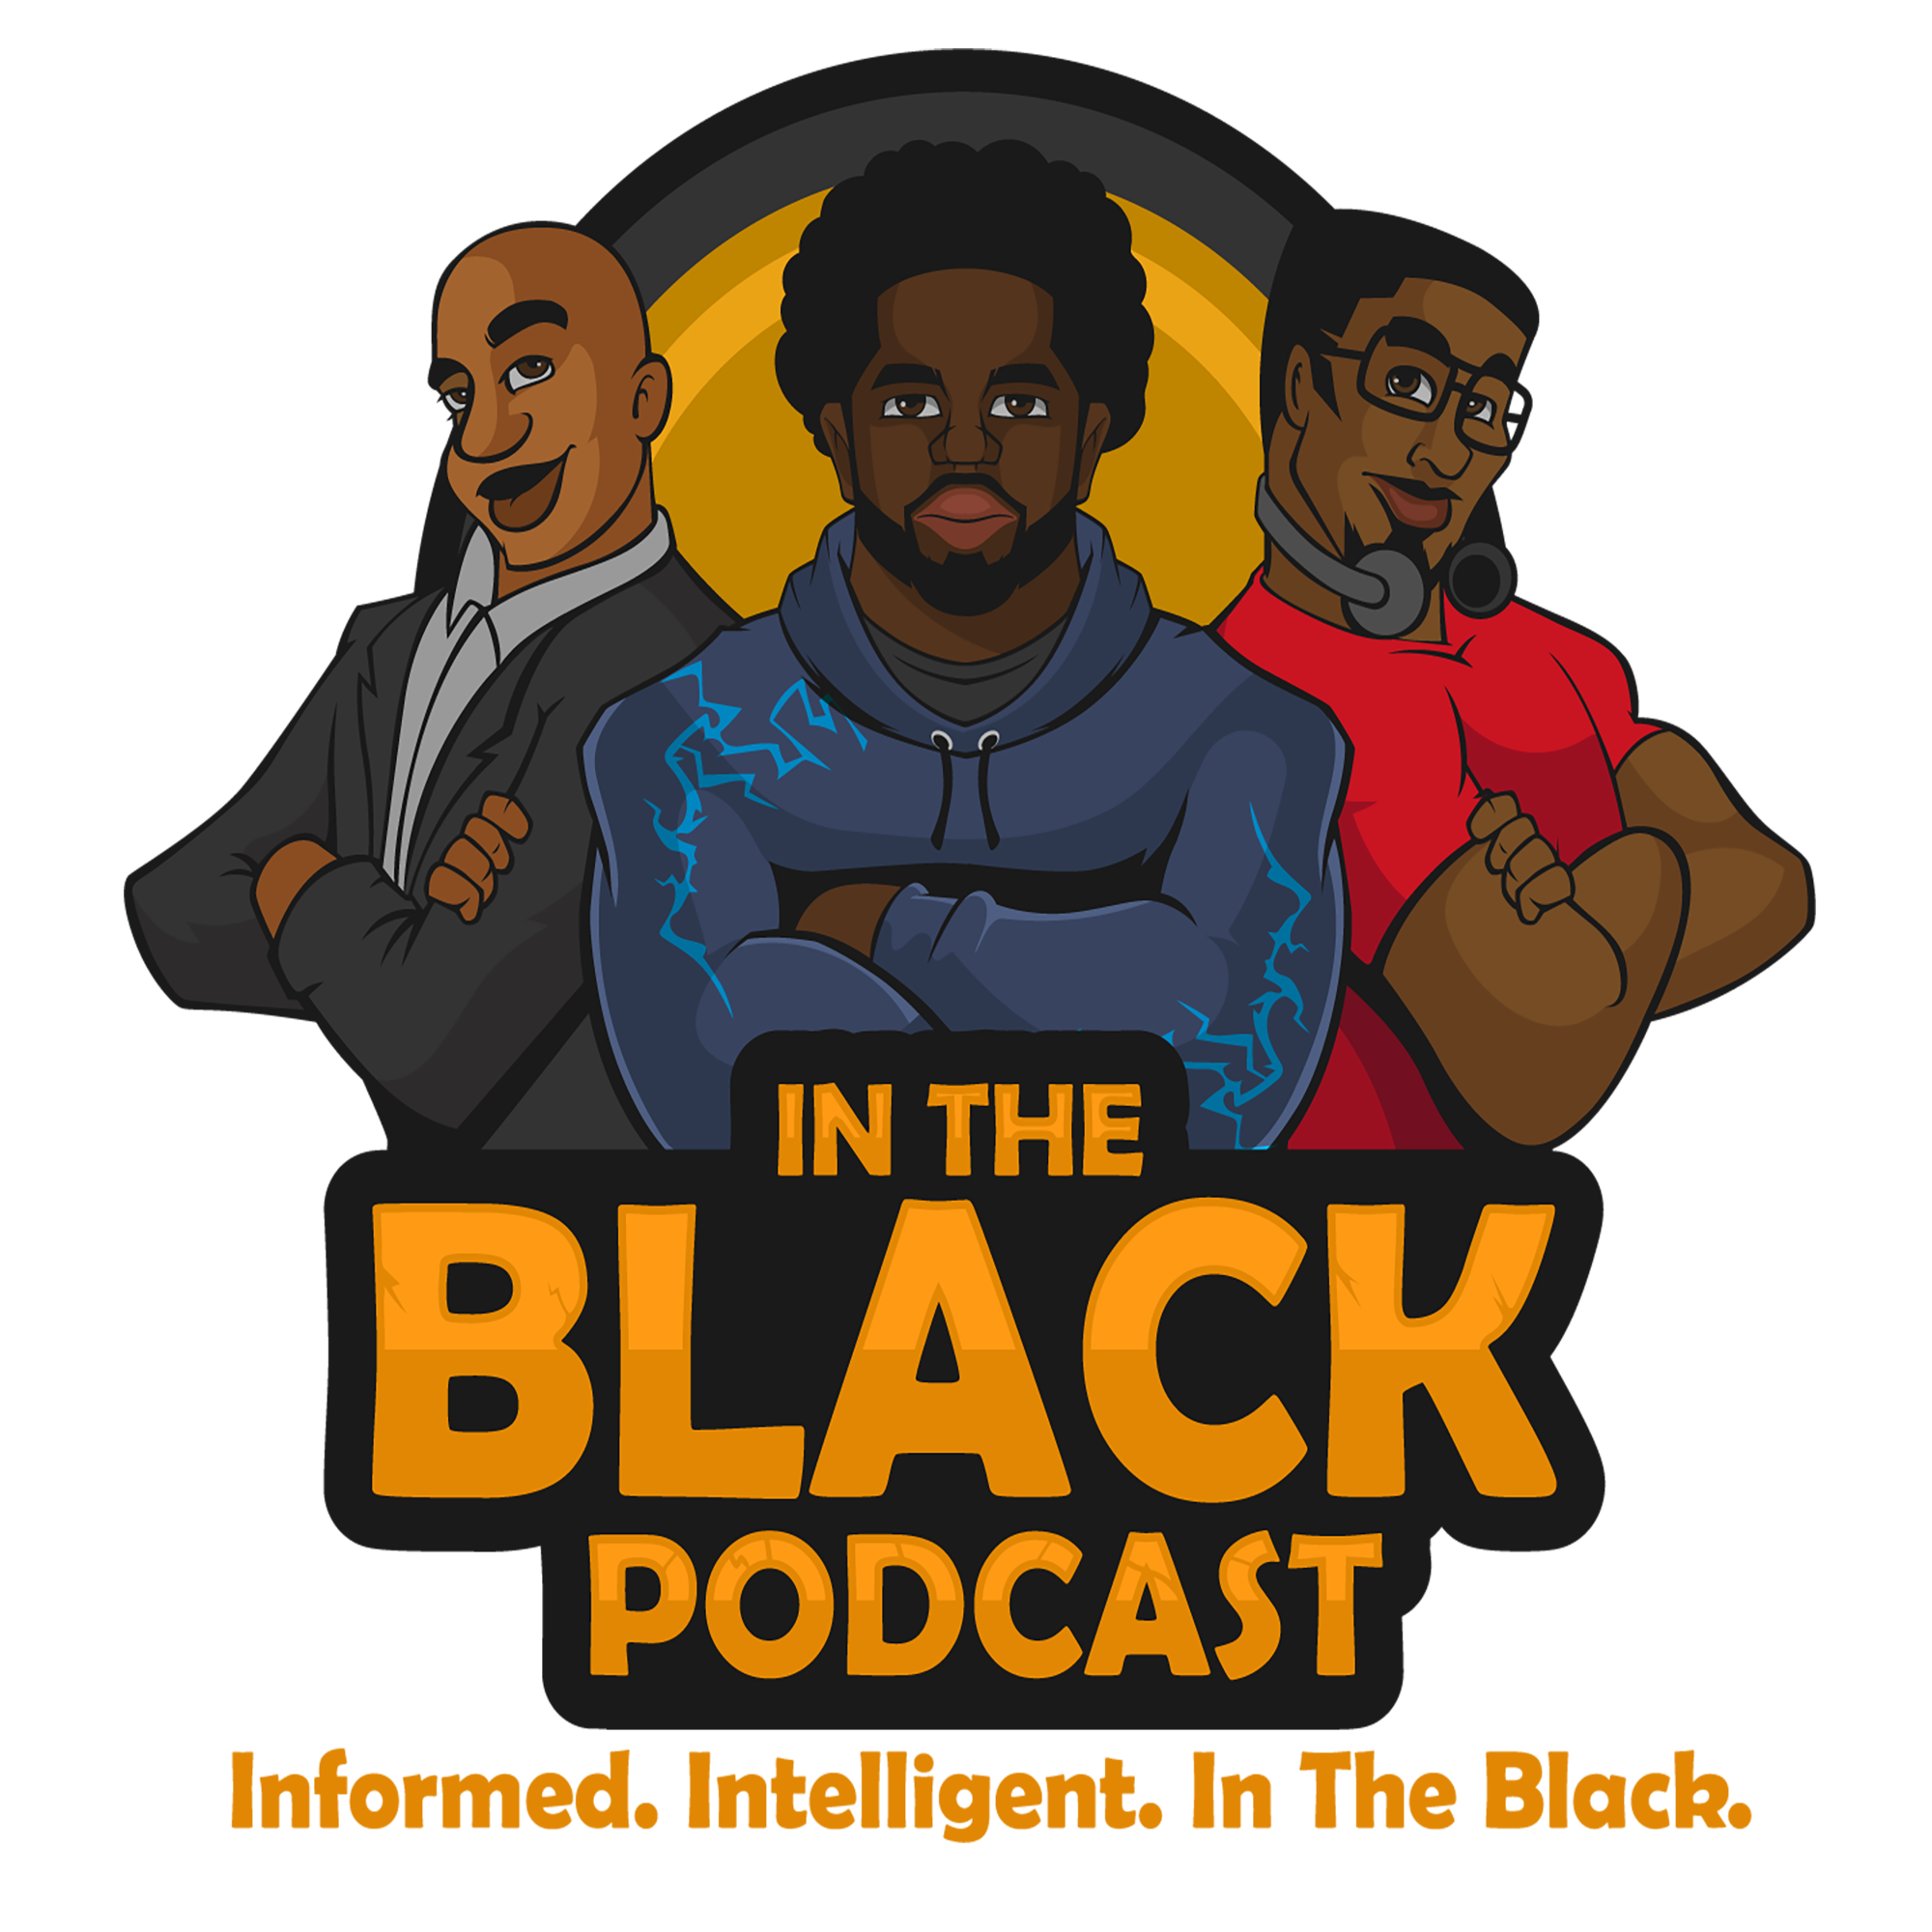 Diddy Tells Biden He Needs A Black Agenda, Netflix New Series #BlackAF, And Changing How COVID-19 Affects The Black Community | ITBP S4E27 show art